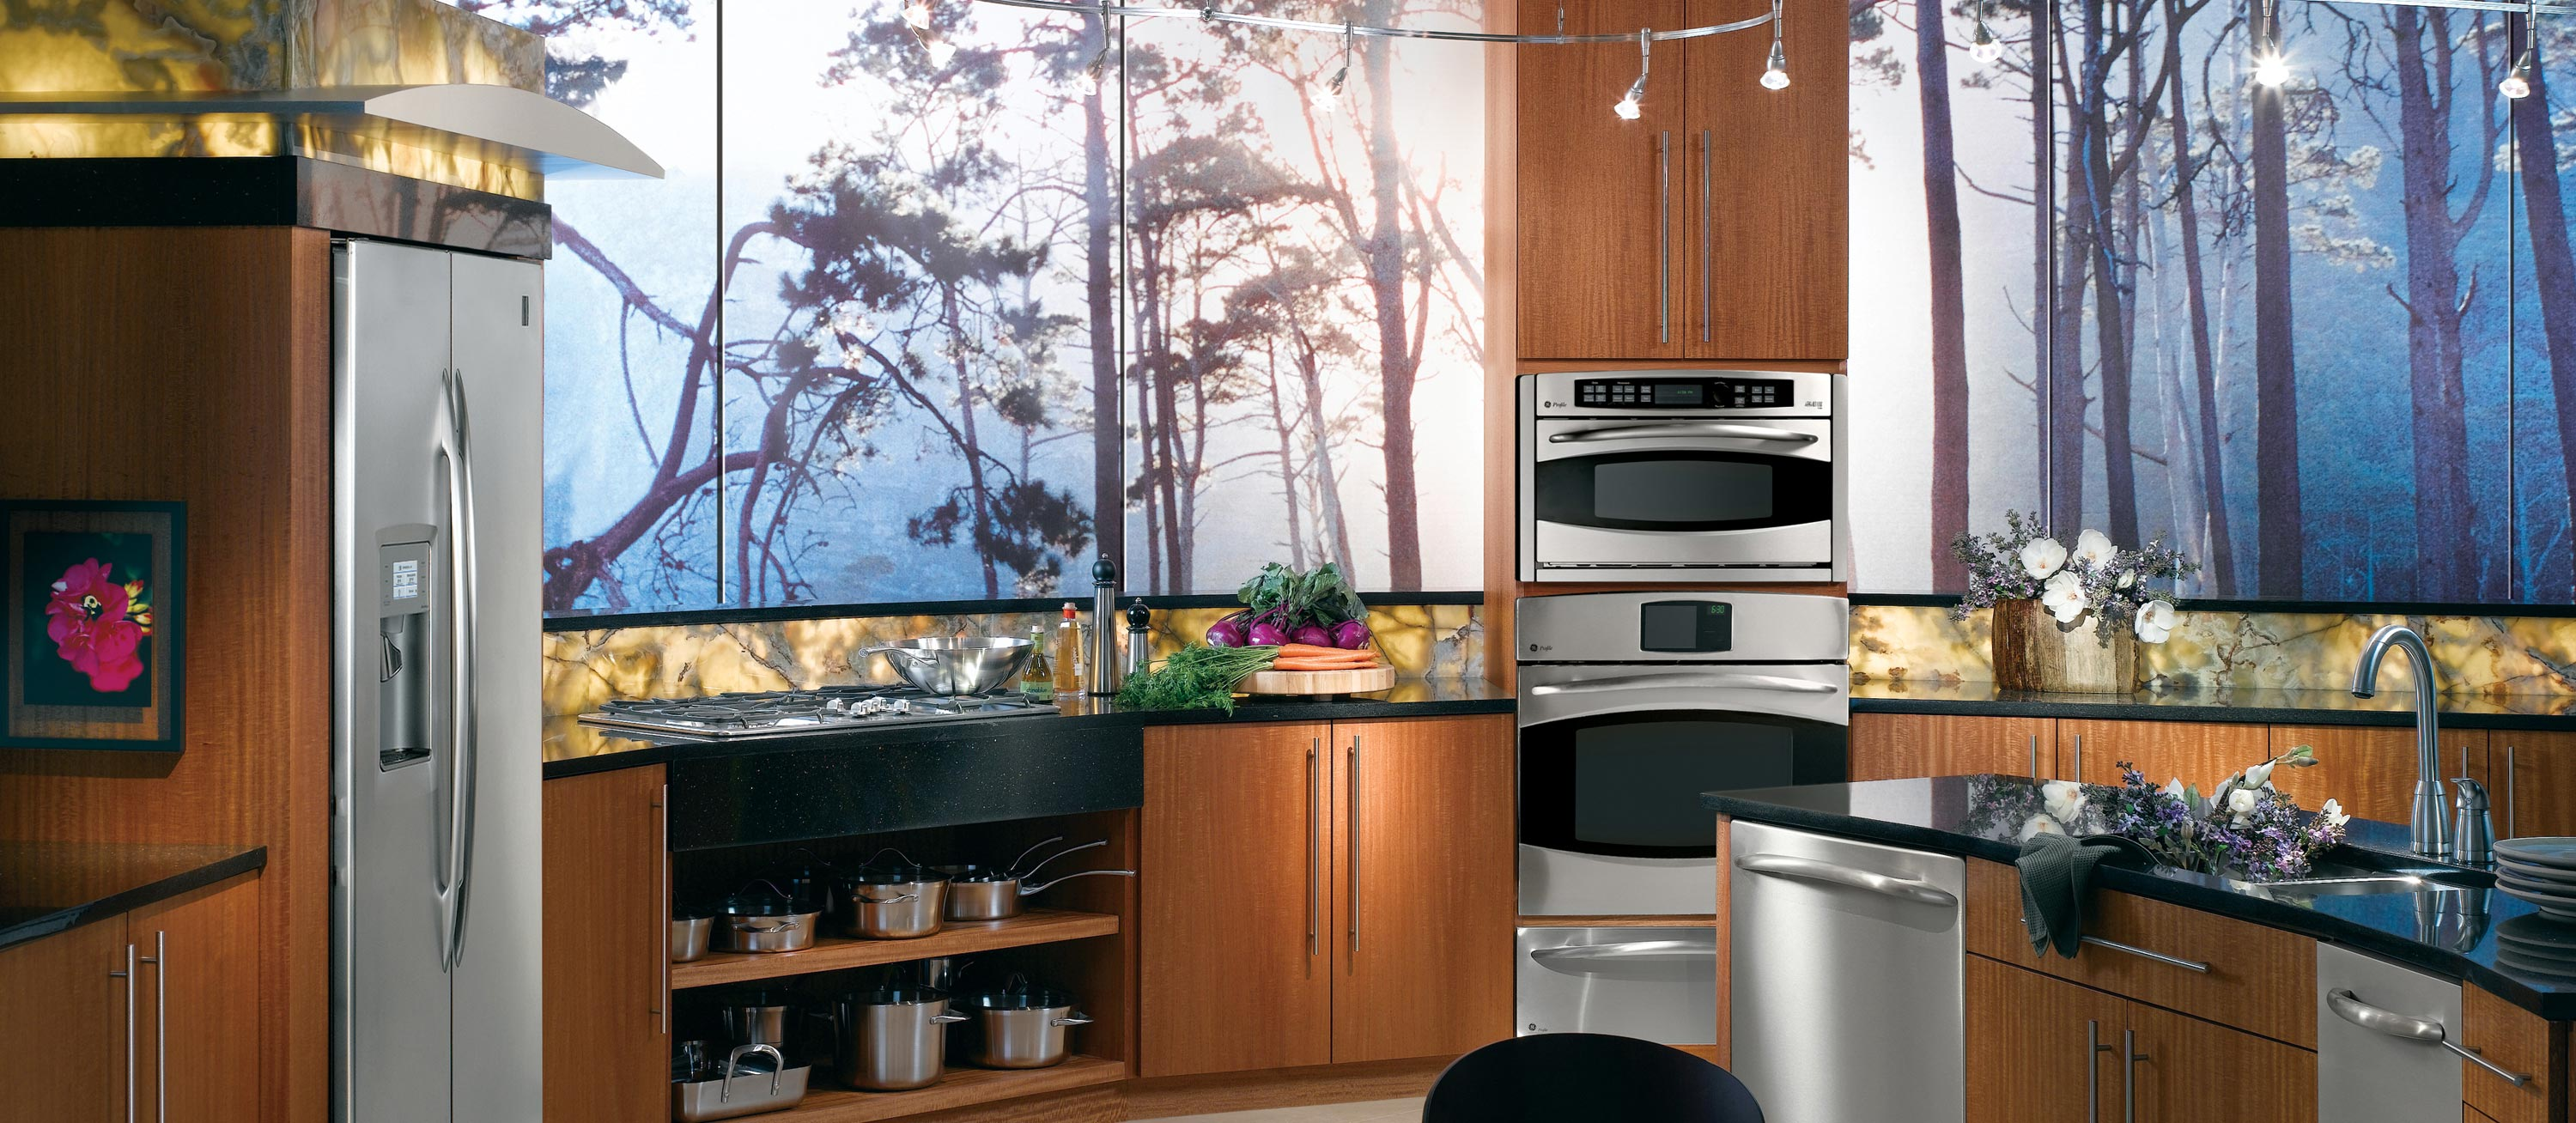 Ge Kitchen Appliances ~ Ge appliances